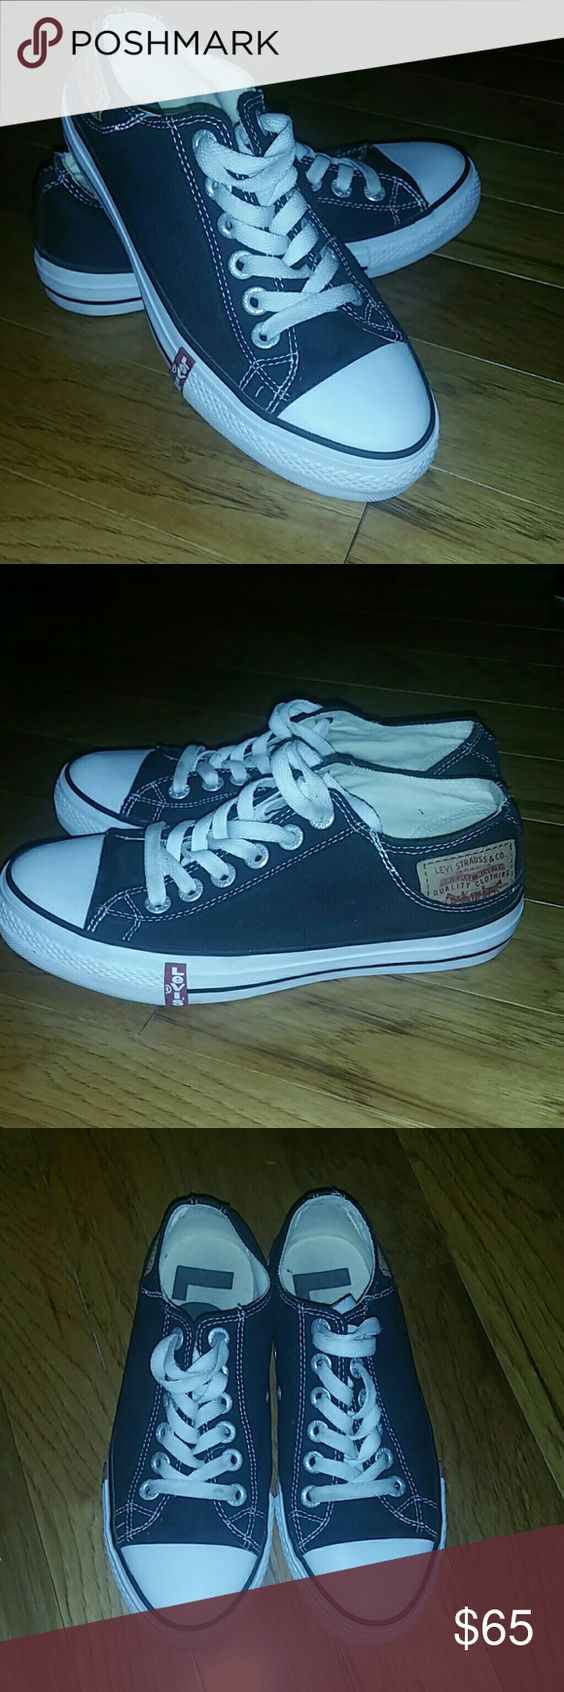 ⚡LISTING⚡Levi's Chucks Worn once...practically brand new.  Excellent condition- too small for me. Super cute converse inspired Levi's Chucks.  Make me an offer! Levi's Shoes Sneakers